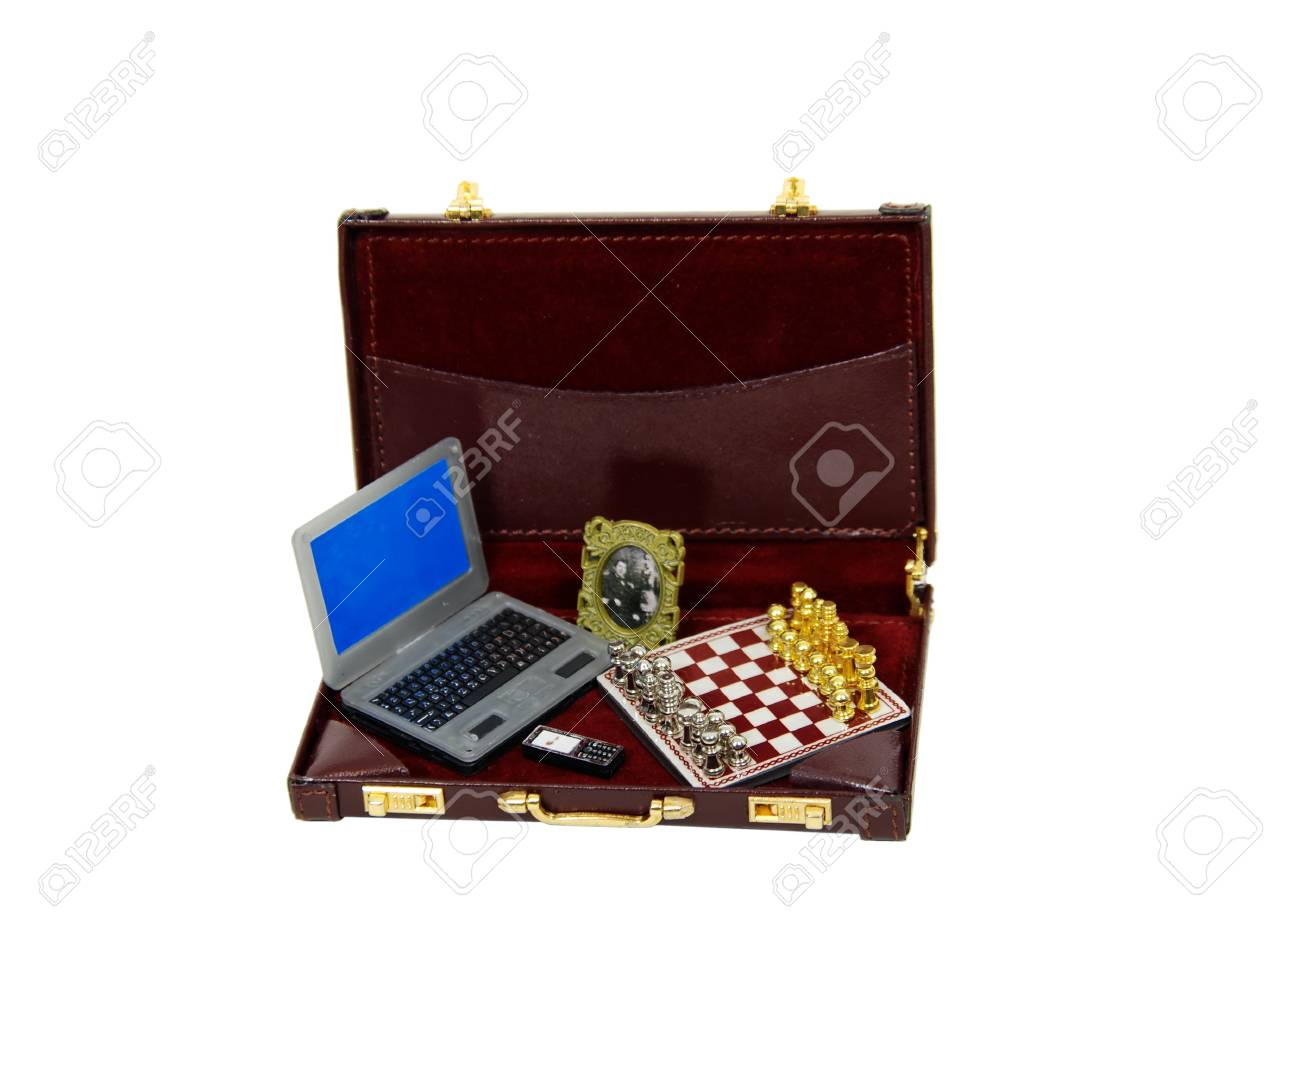 best website 7bbf5 f8fbb Leather briefcase used to carry items to the office including..